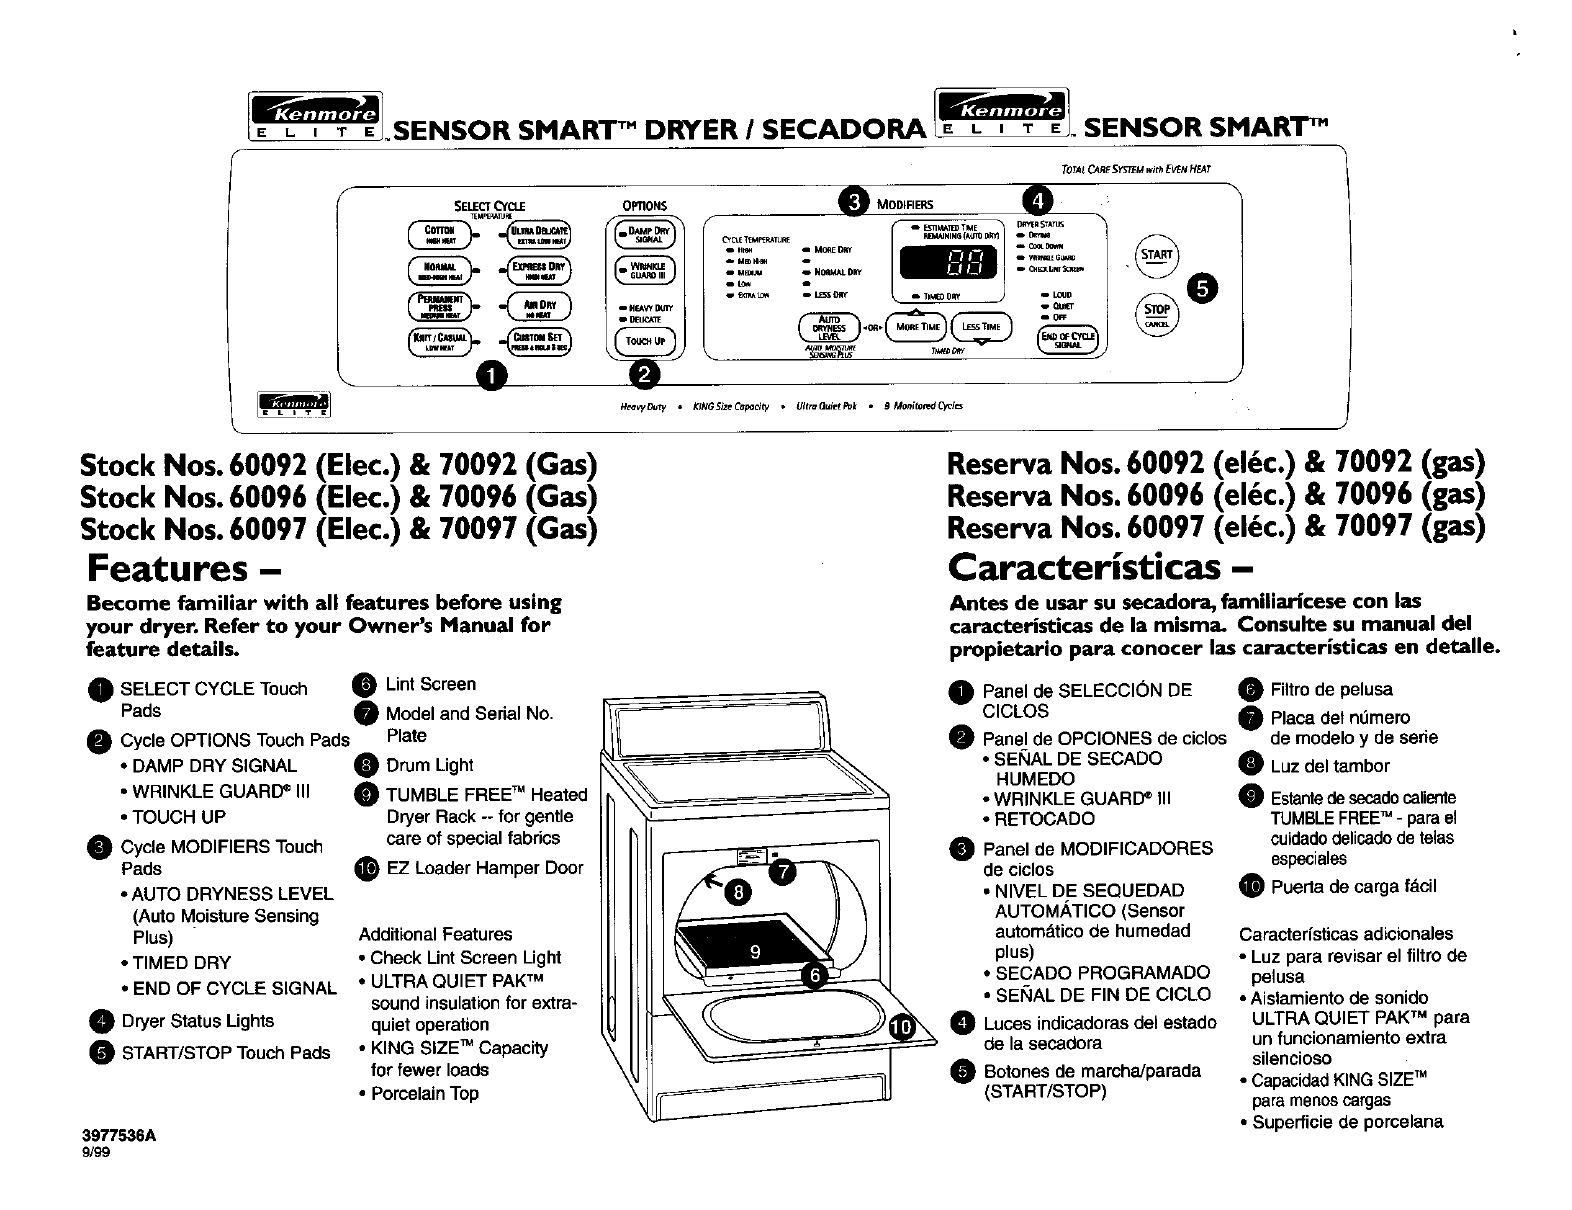 c71c25bf cc9e 4533 a820 91b5258317a8 bg1 kenmore clothes dryer 60092 user guide manualsonline com Kenmore Front Load Washer Diagram at bakdesigns.co